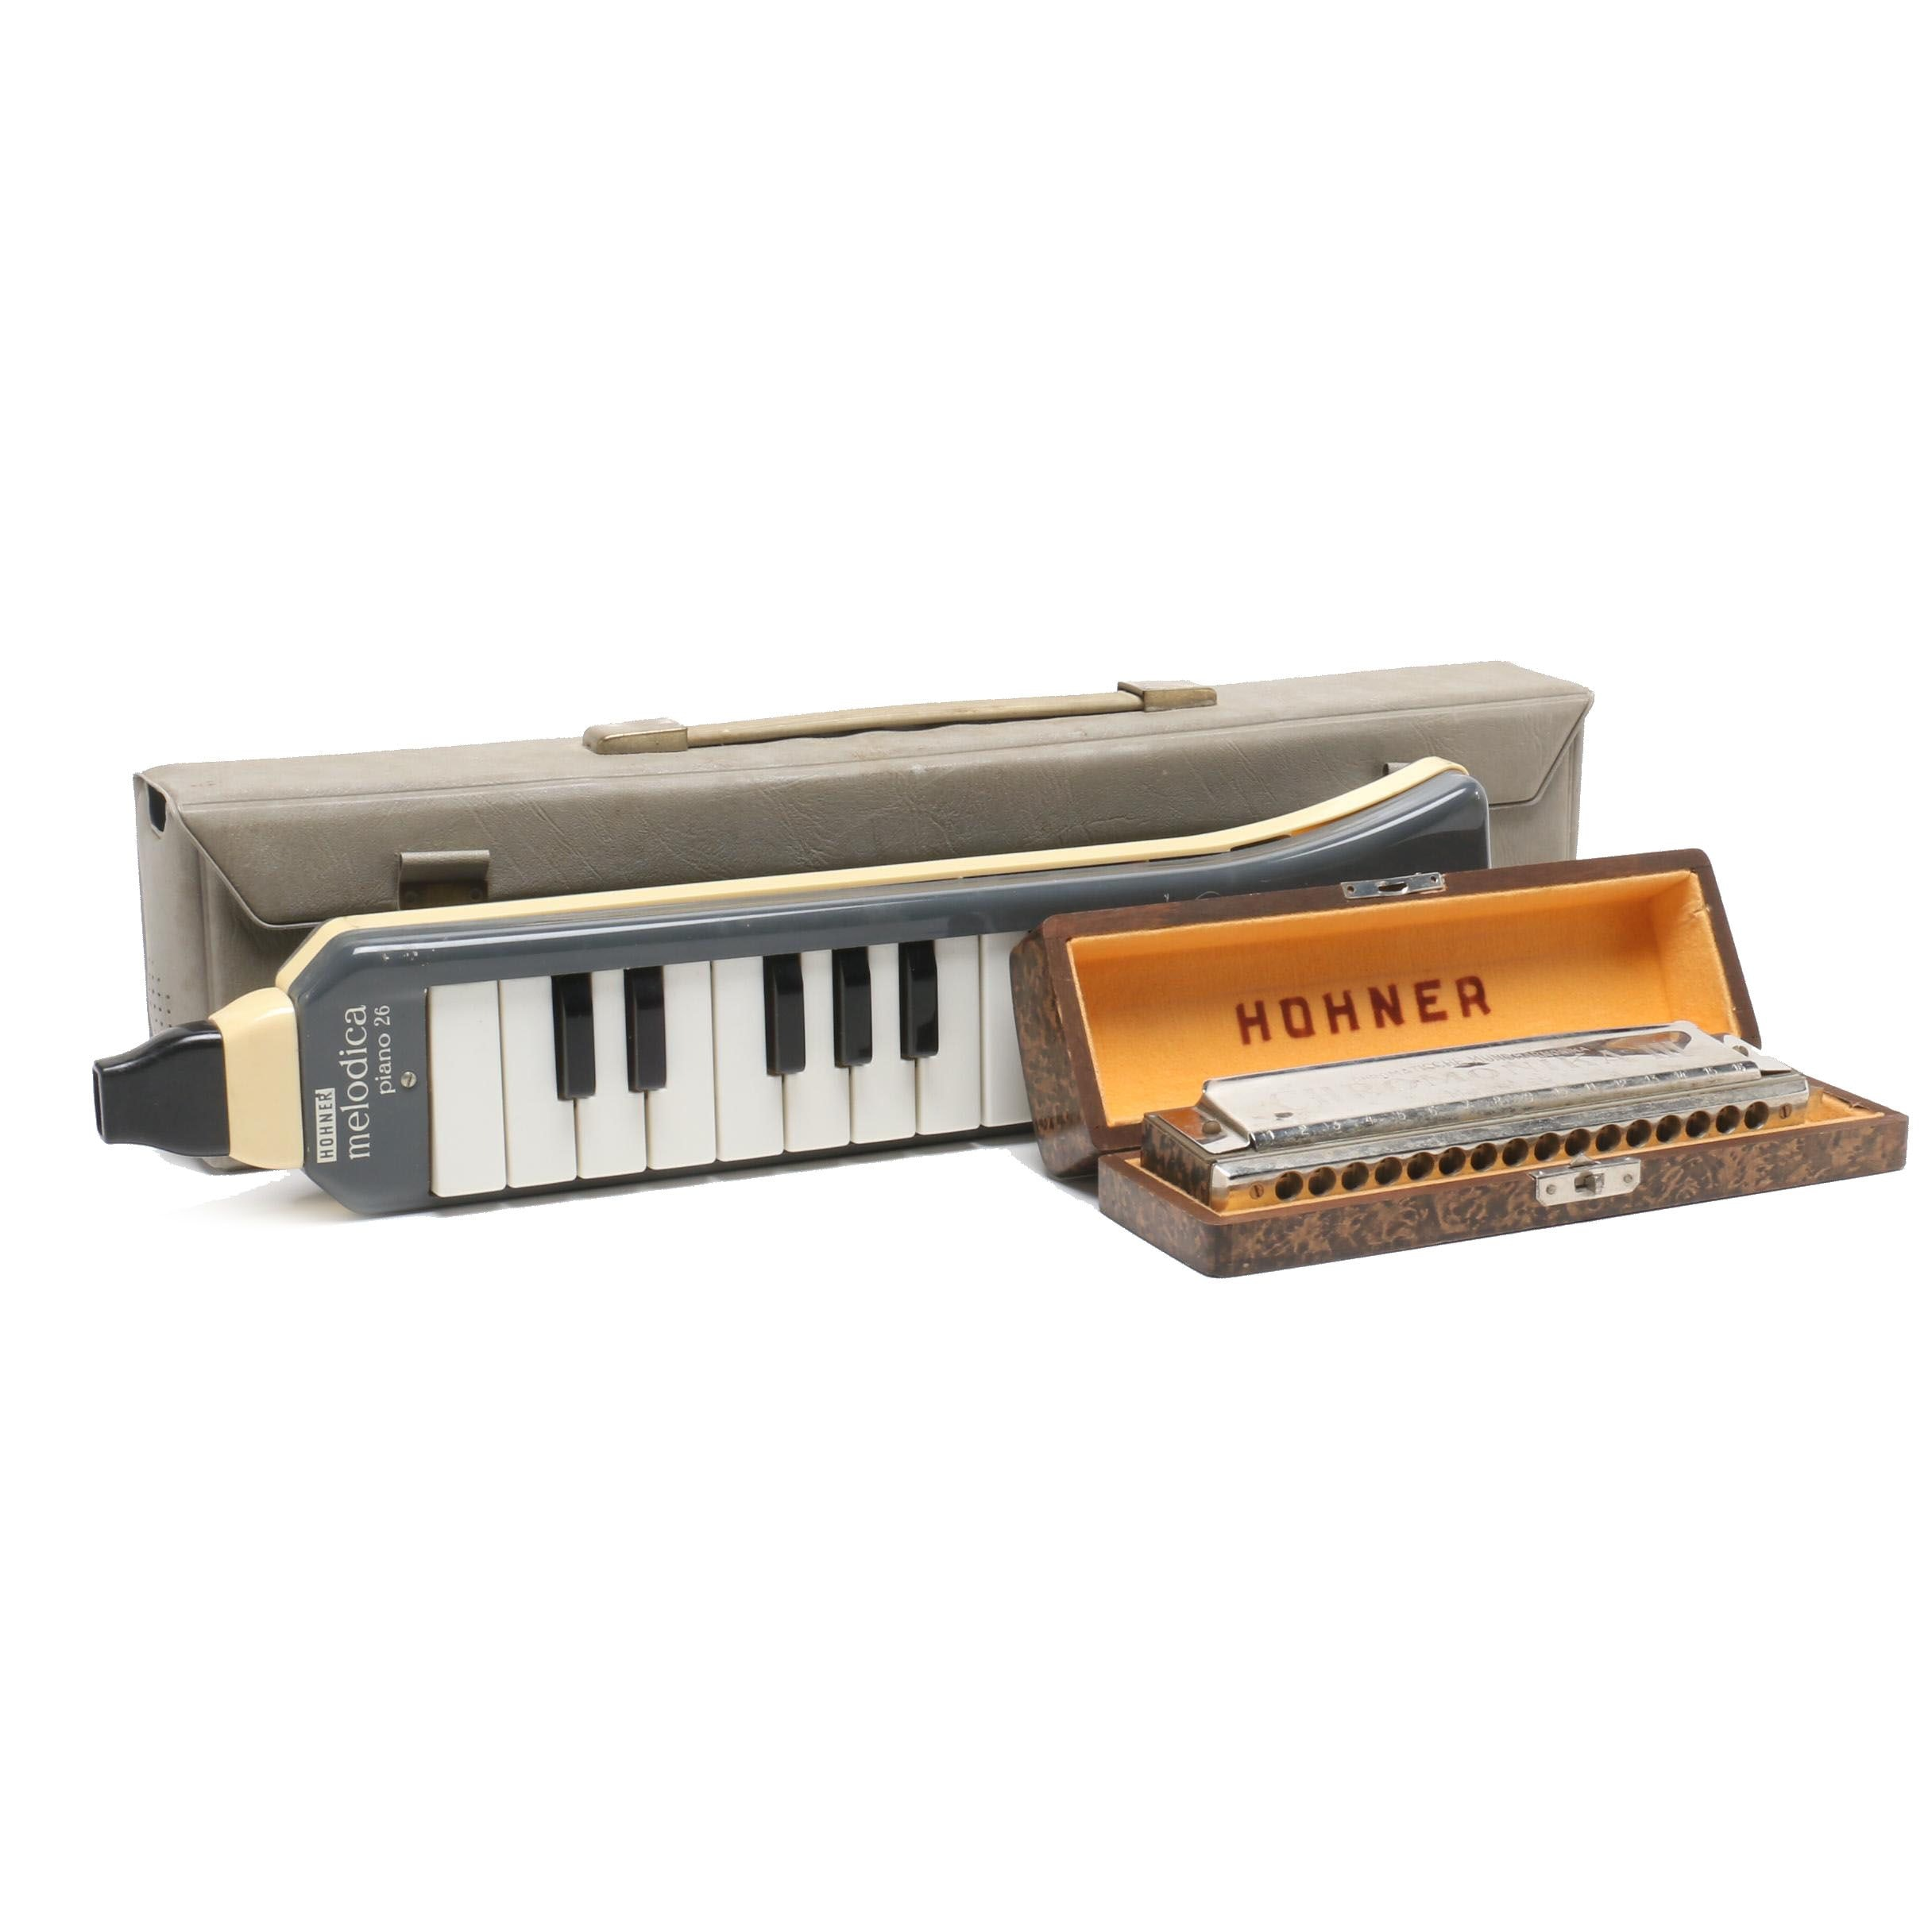 Hohner Chromonika III Harmonica Key C 16-Hole with Hohner Melodica Piano 26